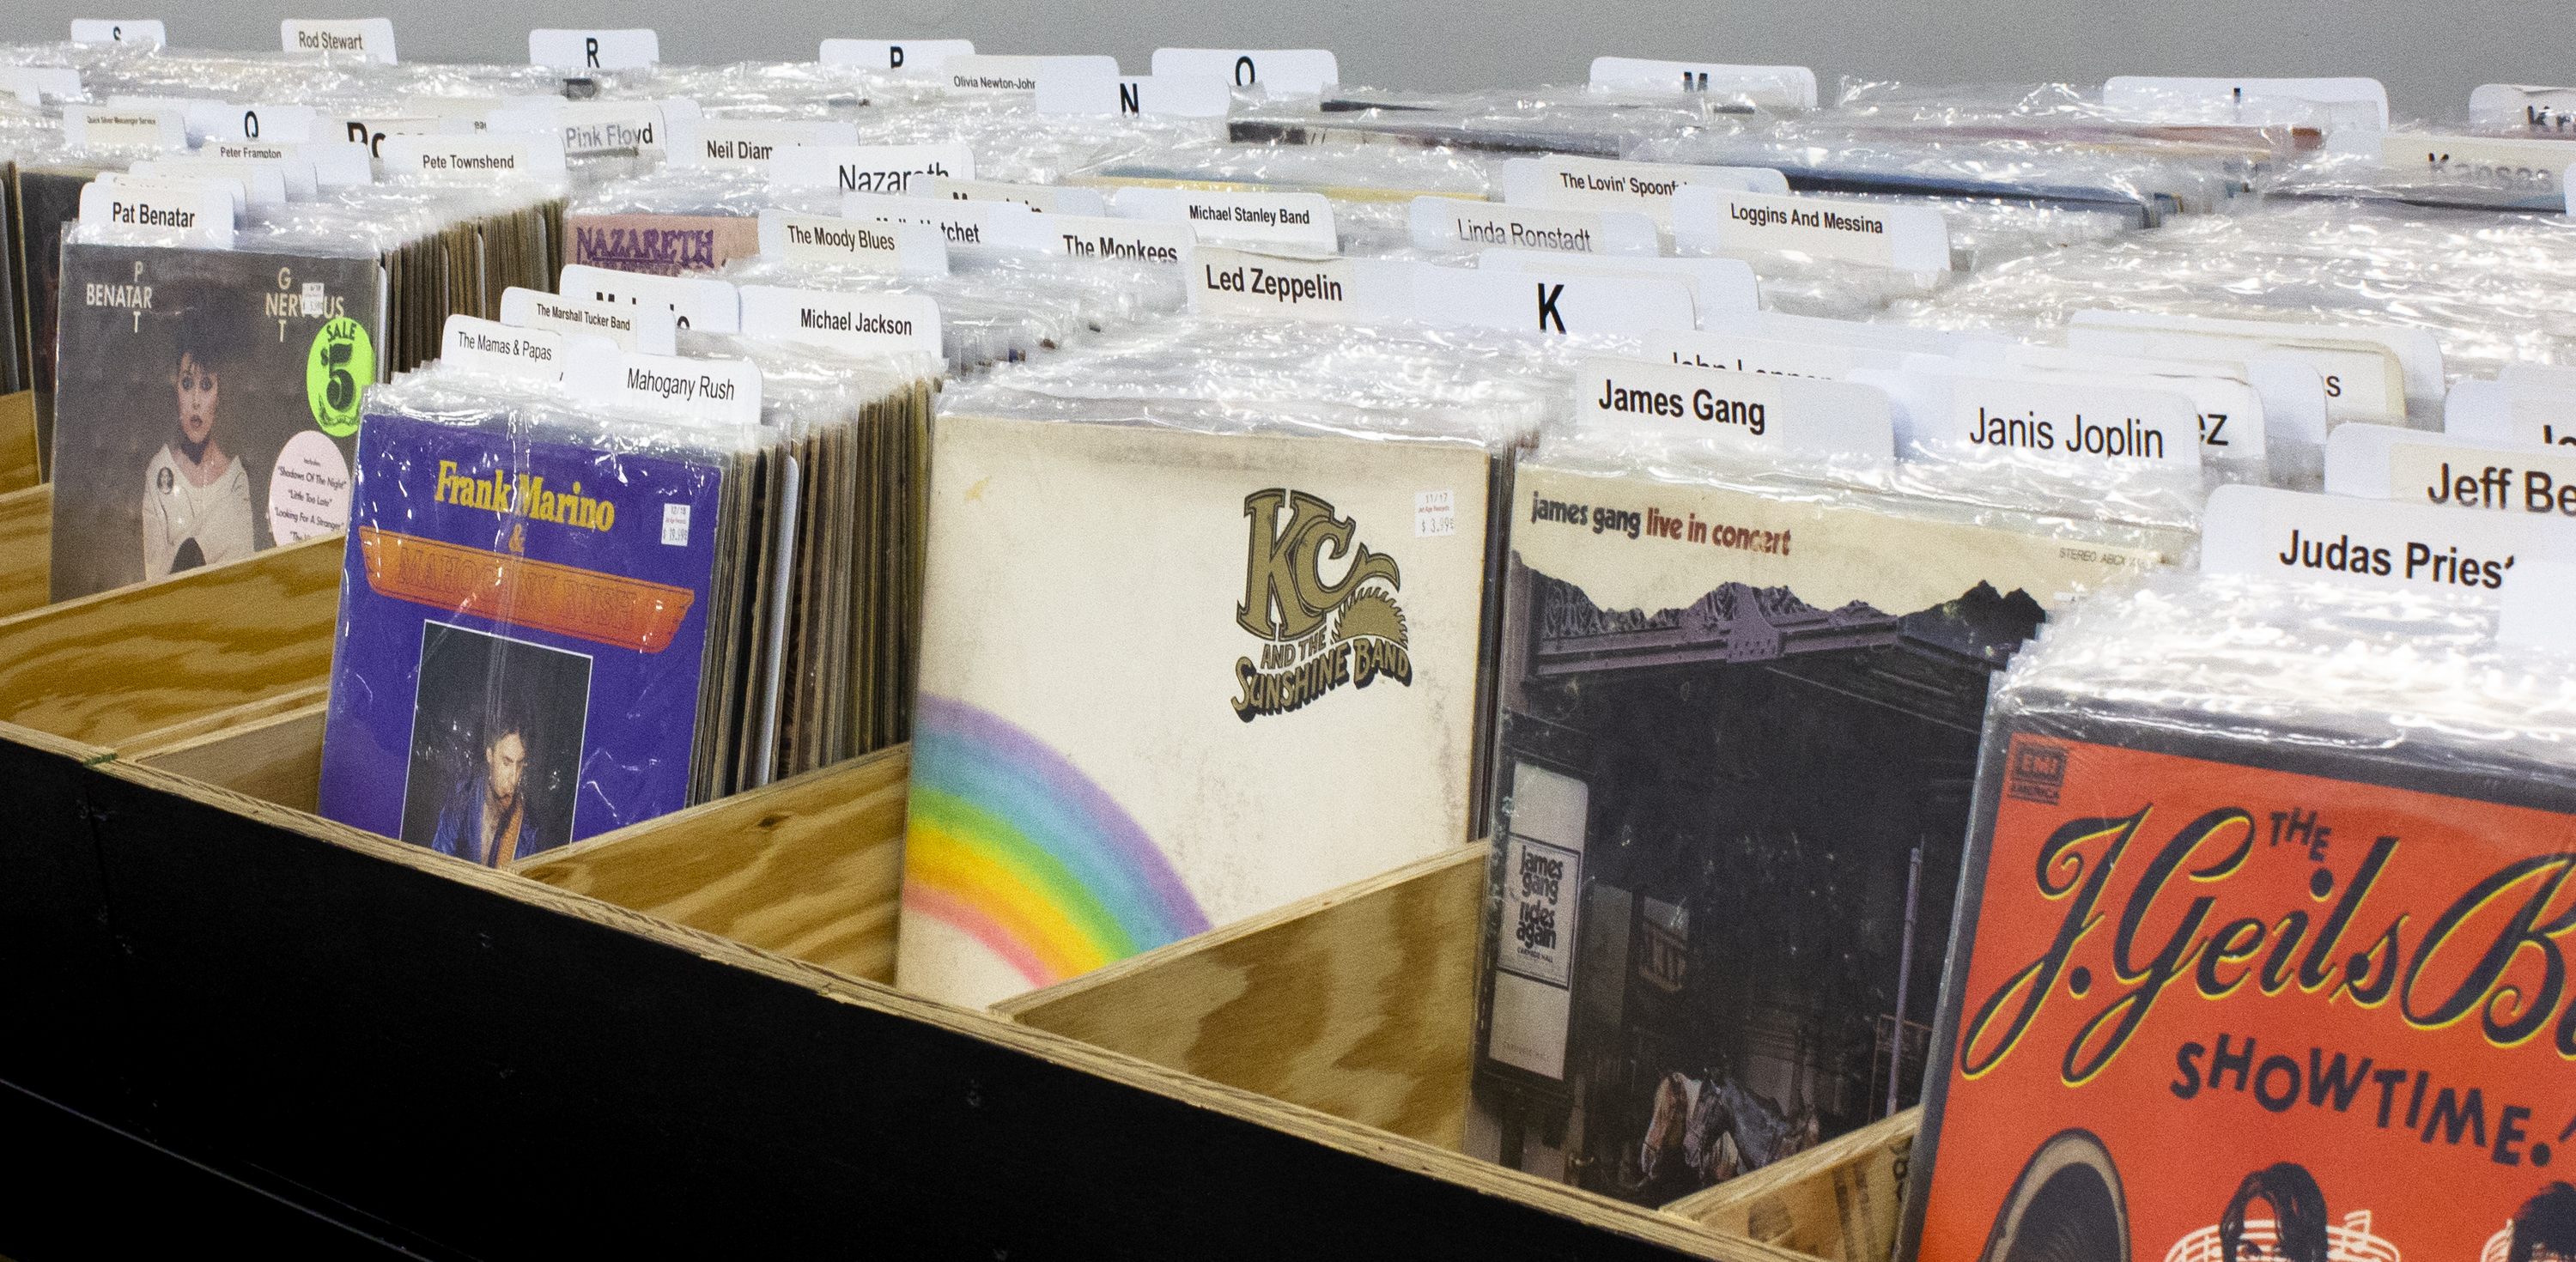 Full selection of new and used vintage vinyl and even dollar bins.